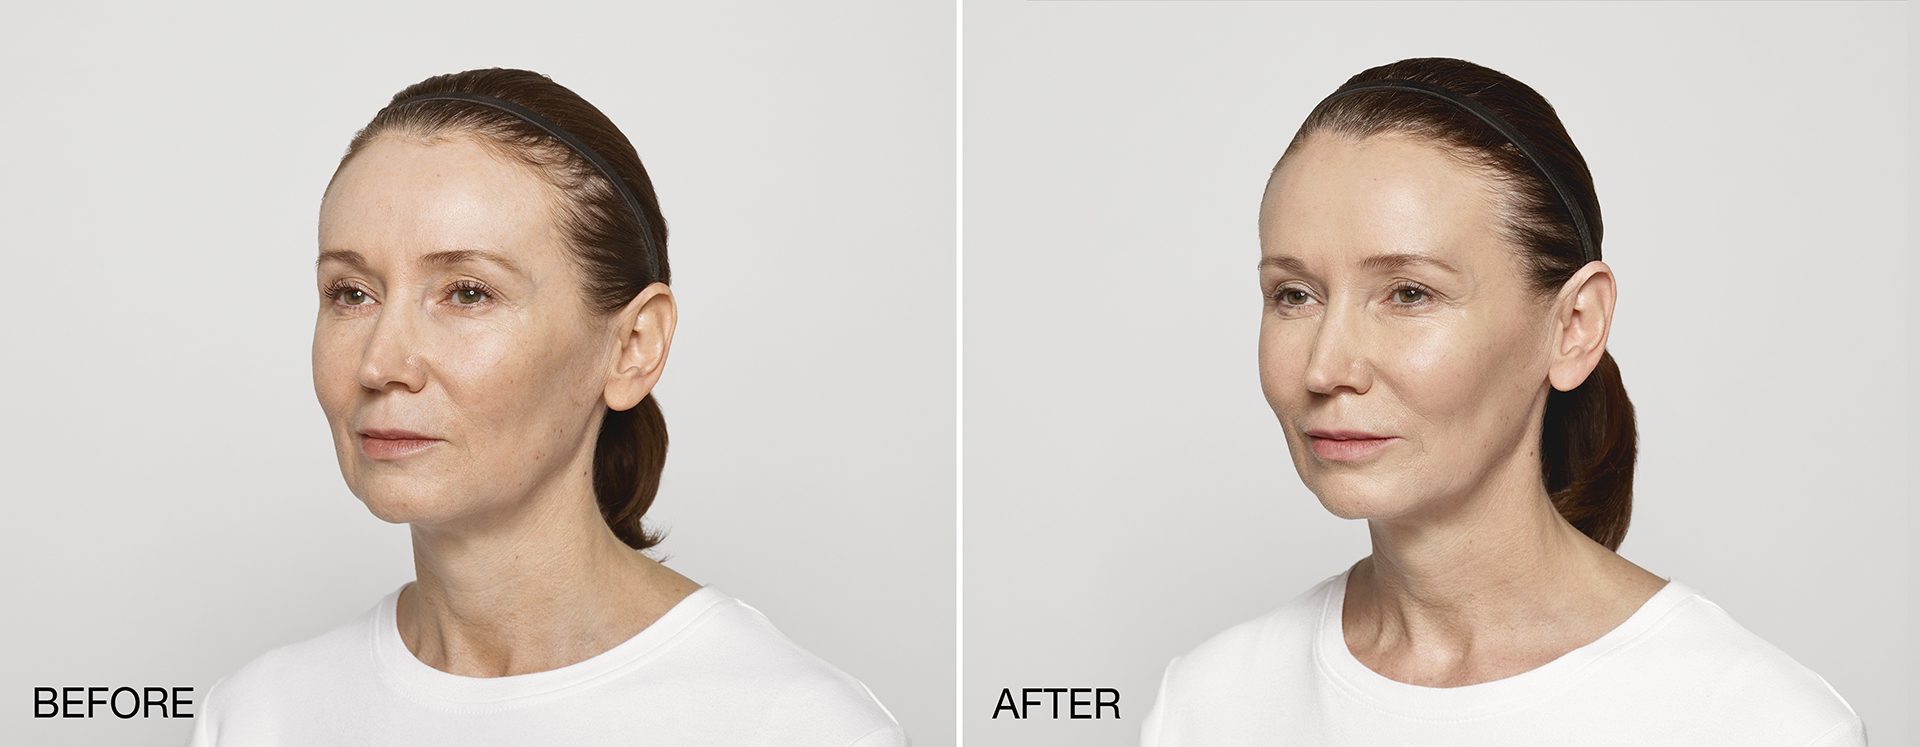 restylane-lyft-carol-before-and-after-4